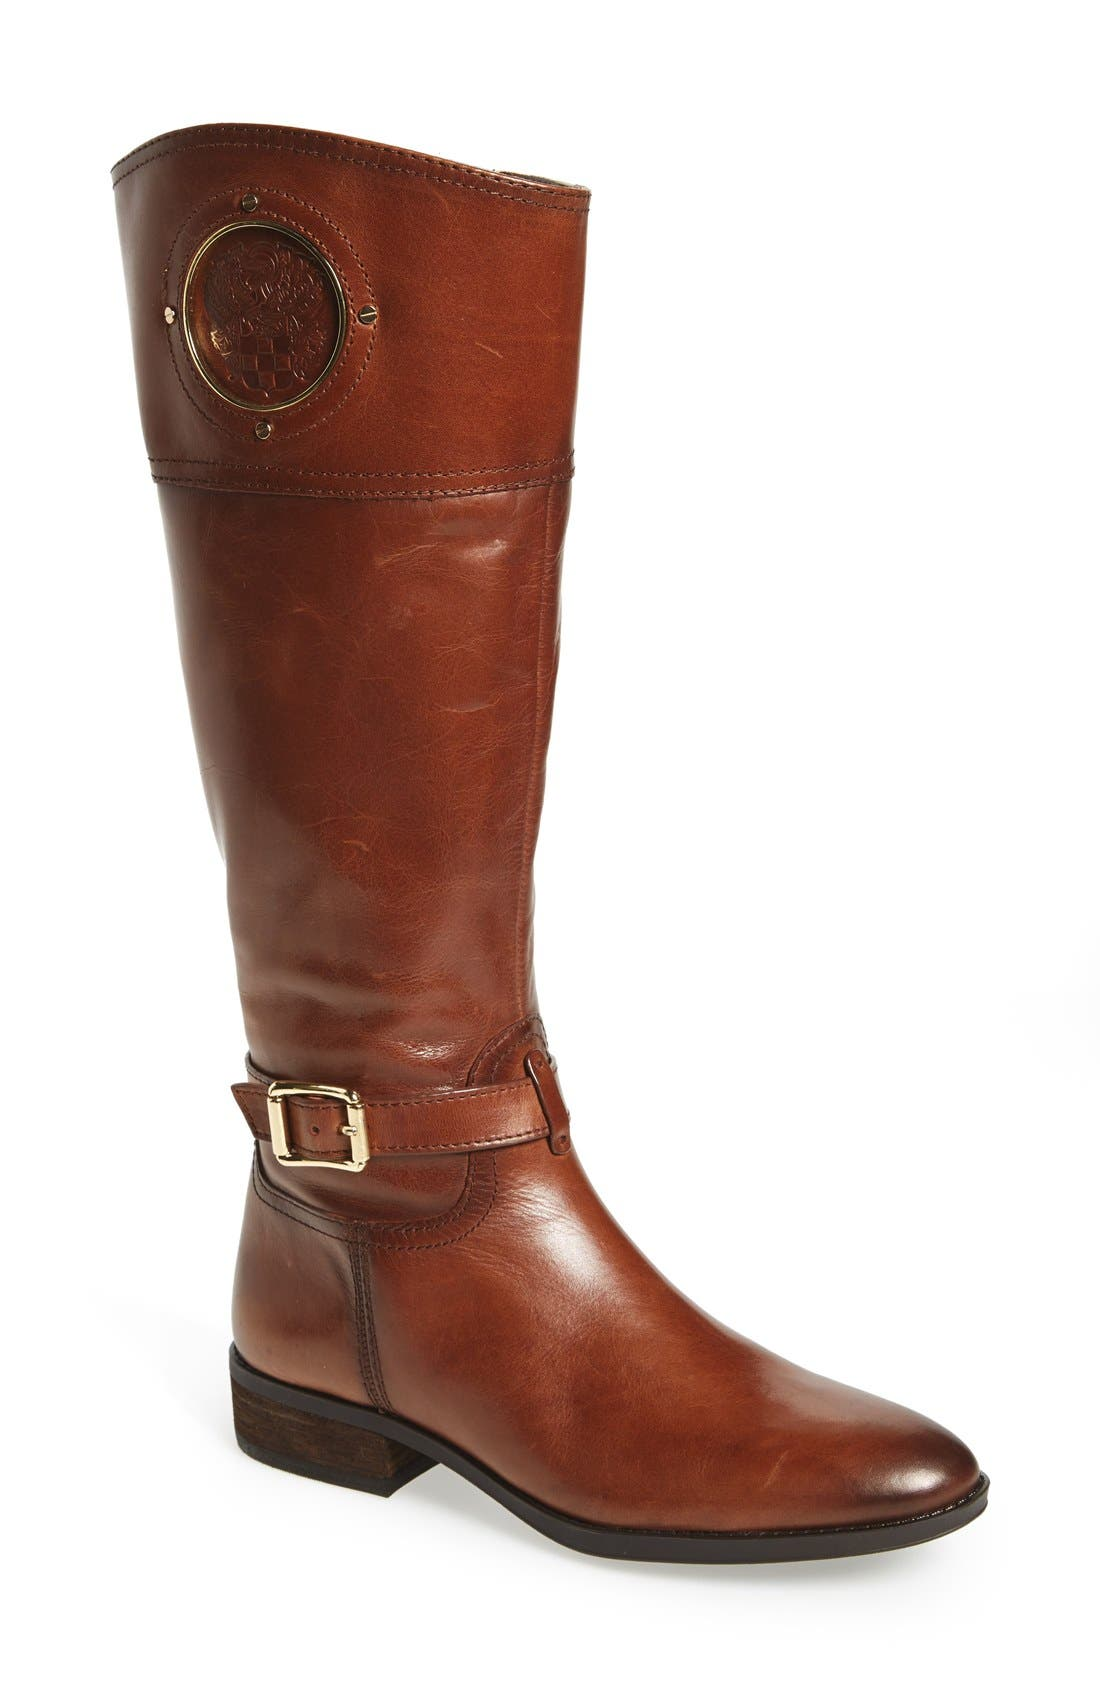 Main Image - Vince Camuto 'Phillie' Tall Riding Boot (Women) (Regular & Extended Calf)